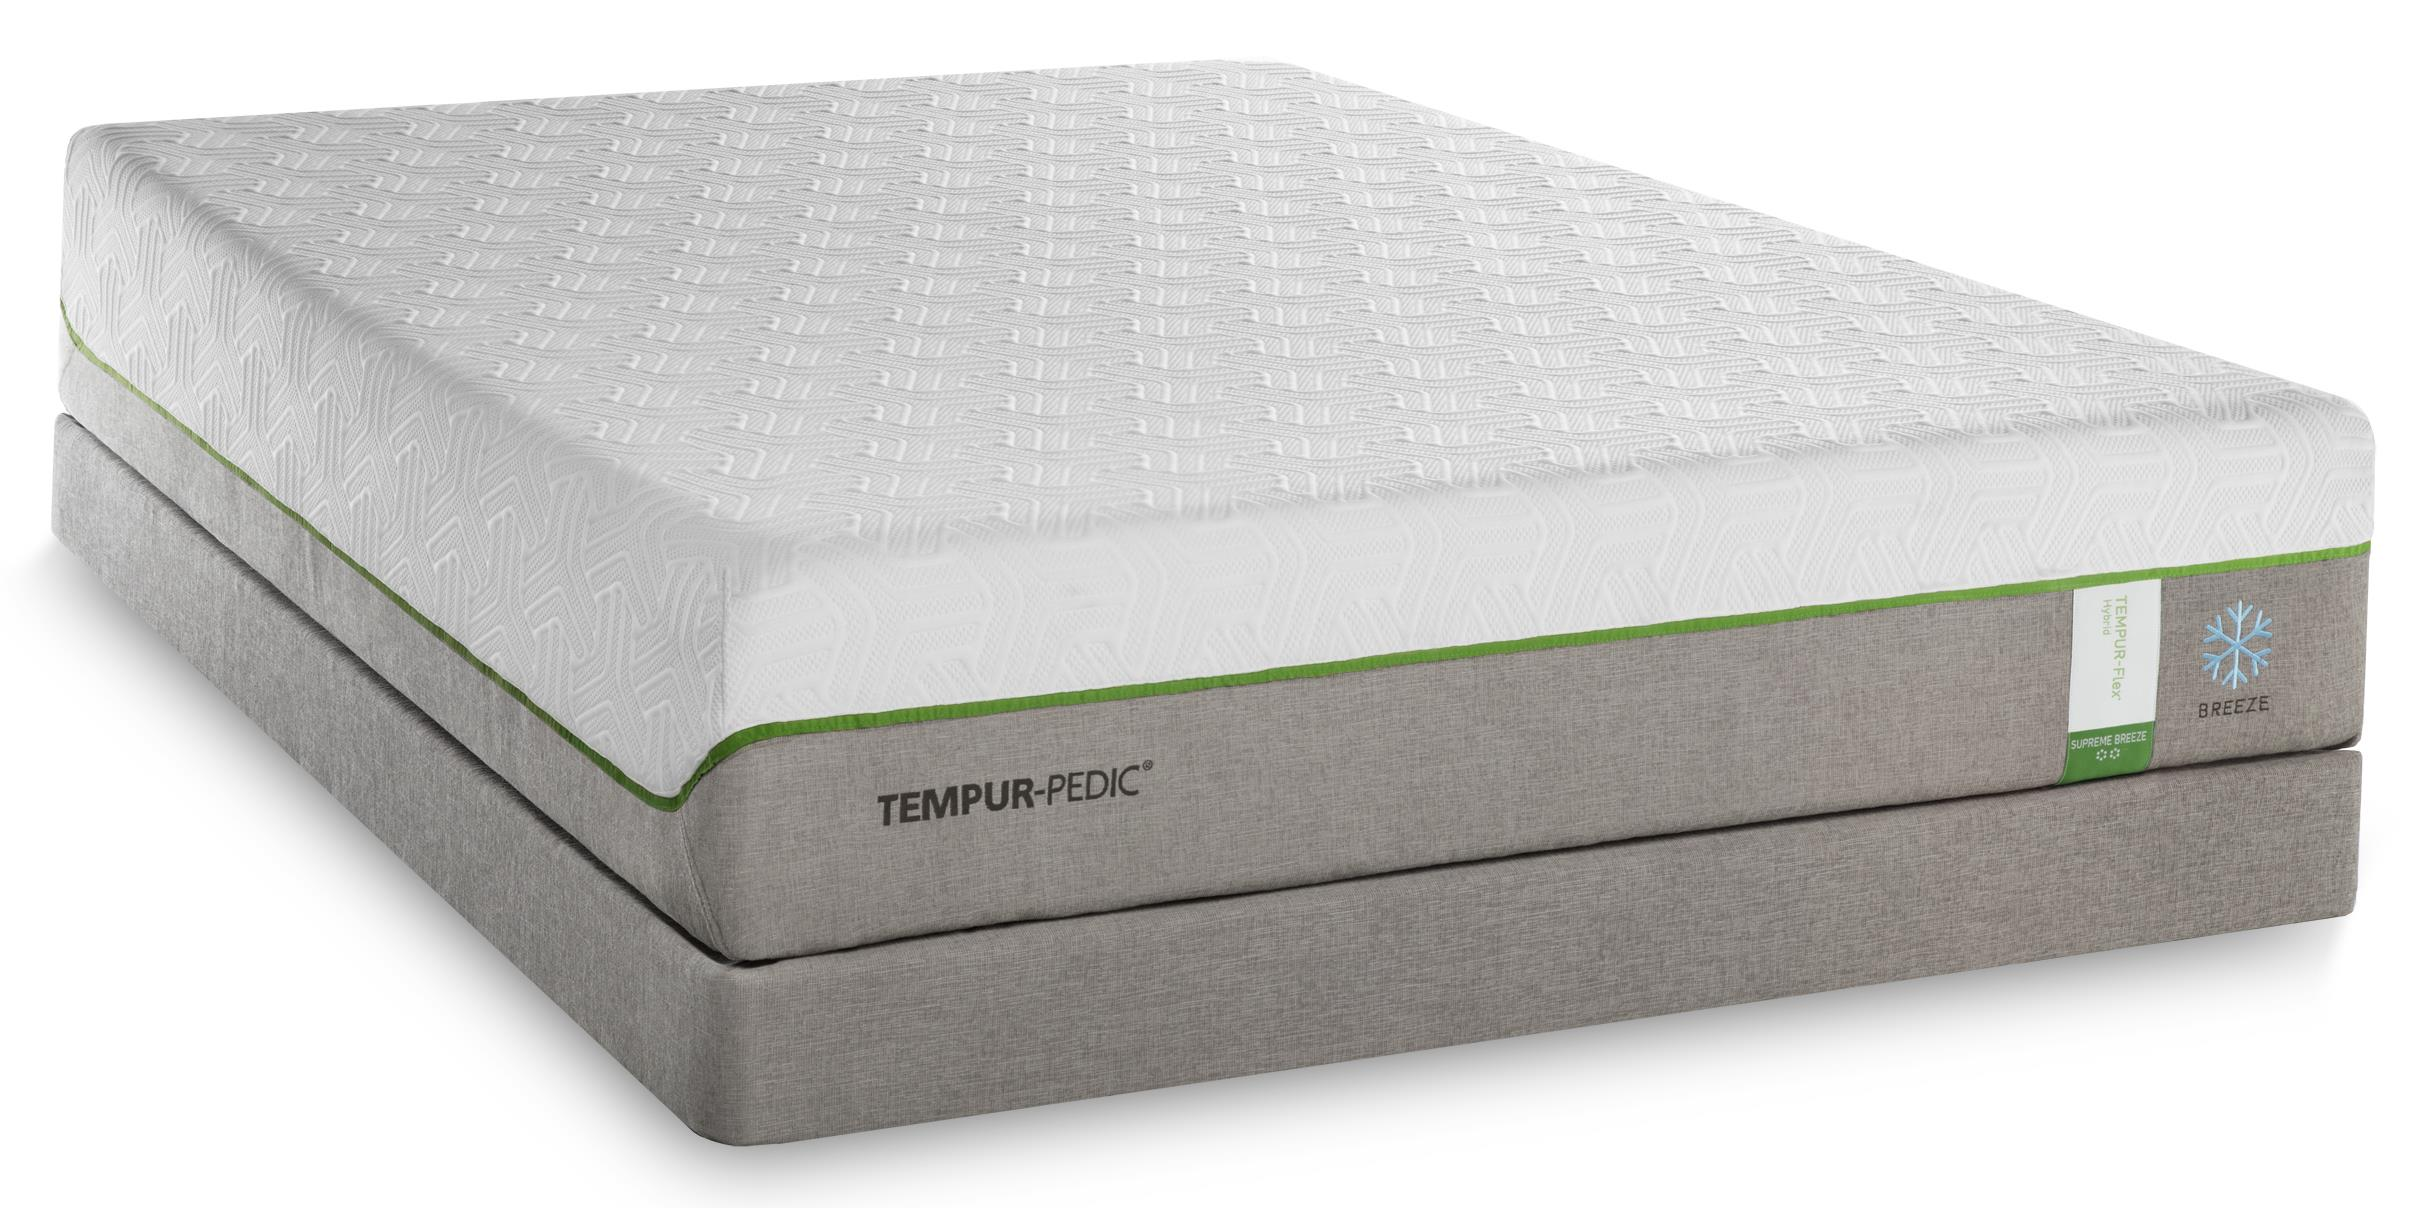 Tempur-Pedic® TEMPUR-Flex Supreme Breeze Twin Extra Long Medium Plush Matt Set, Adj - Item Number: 10292220+25287120